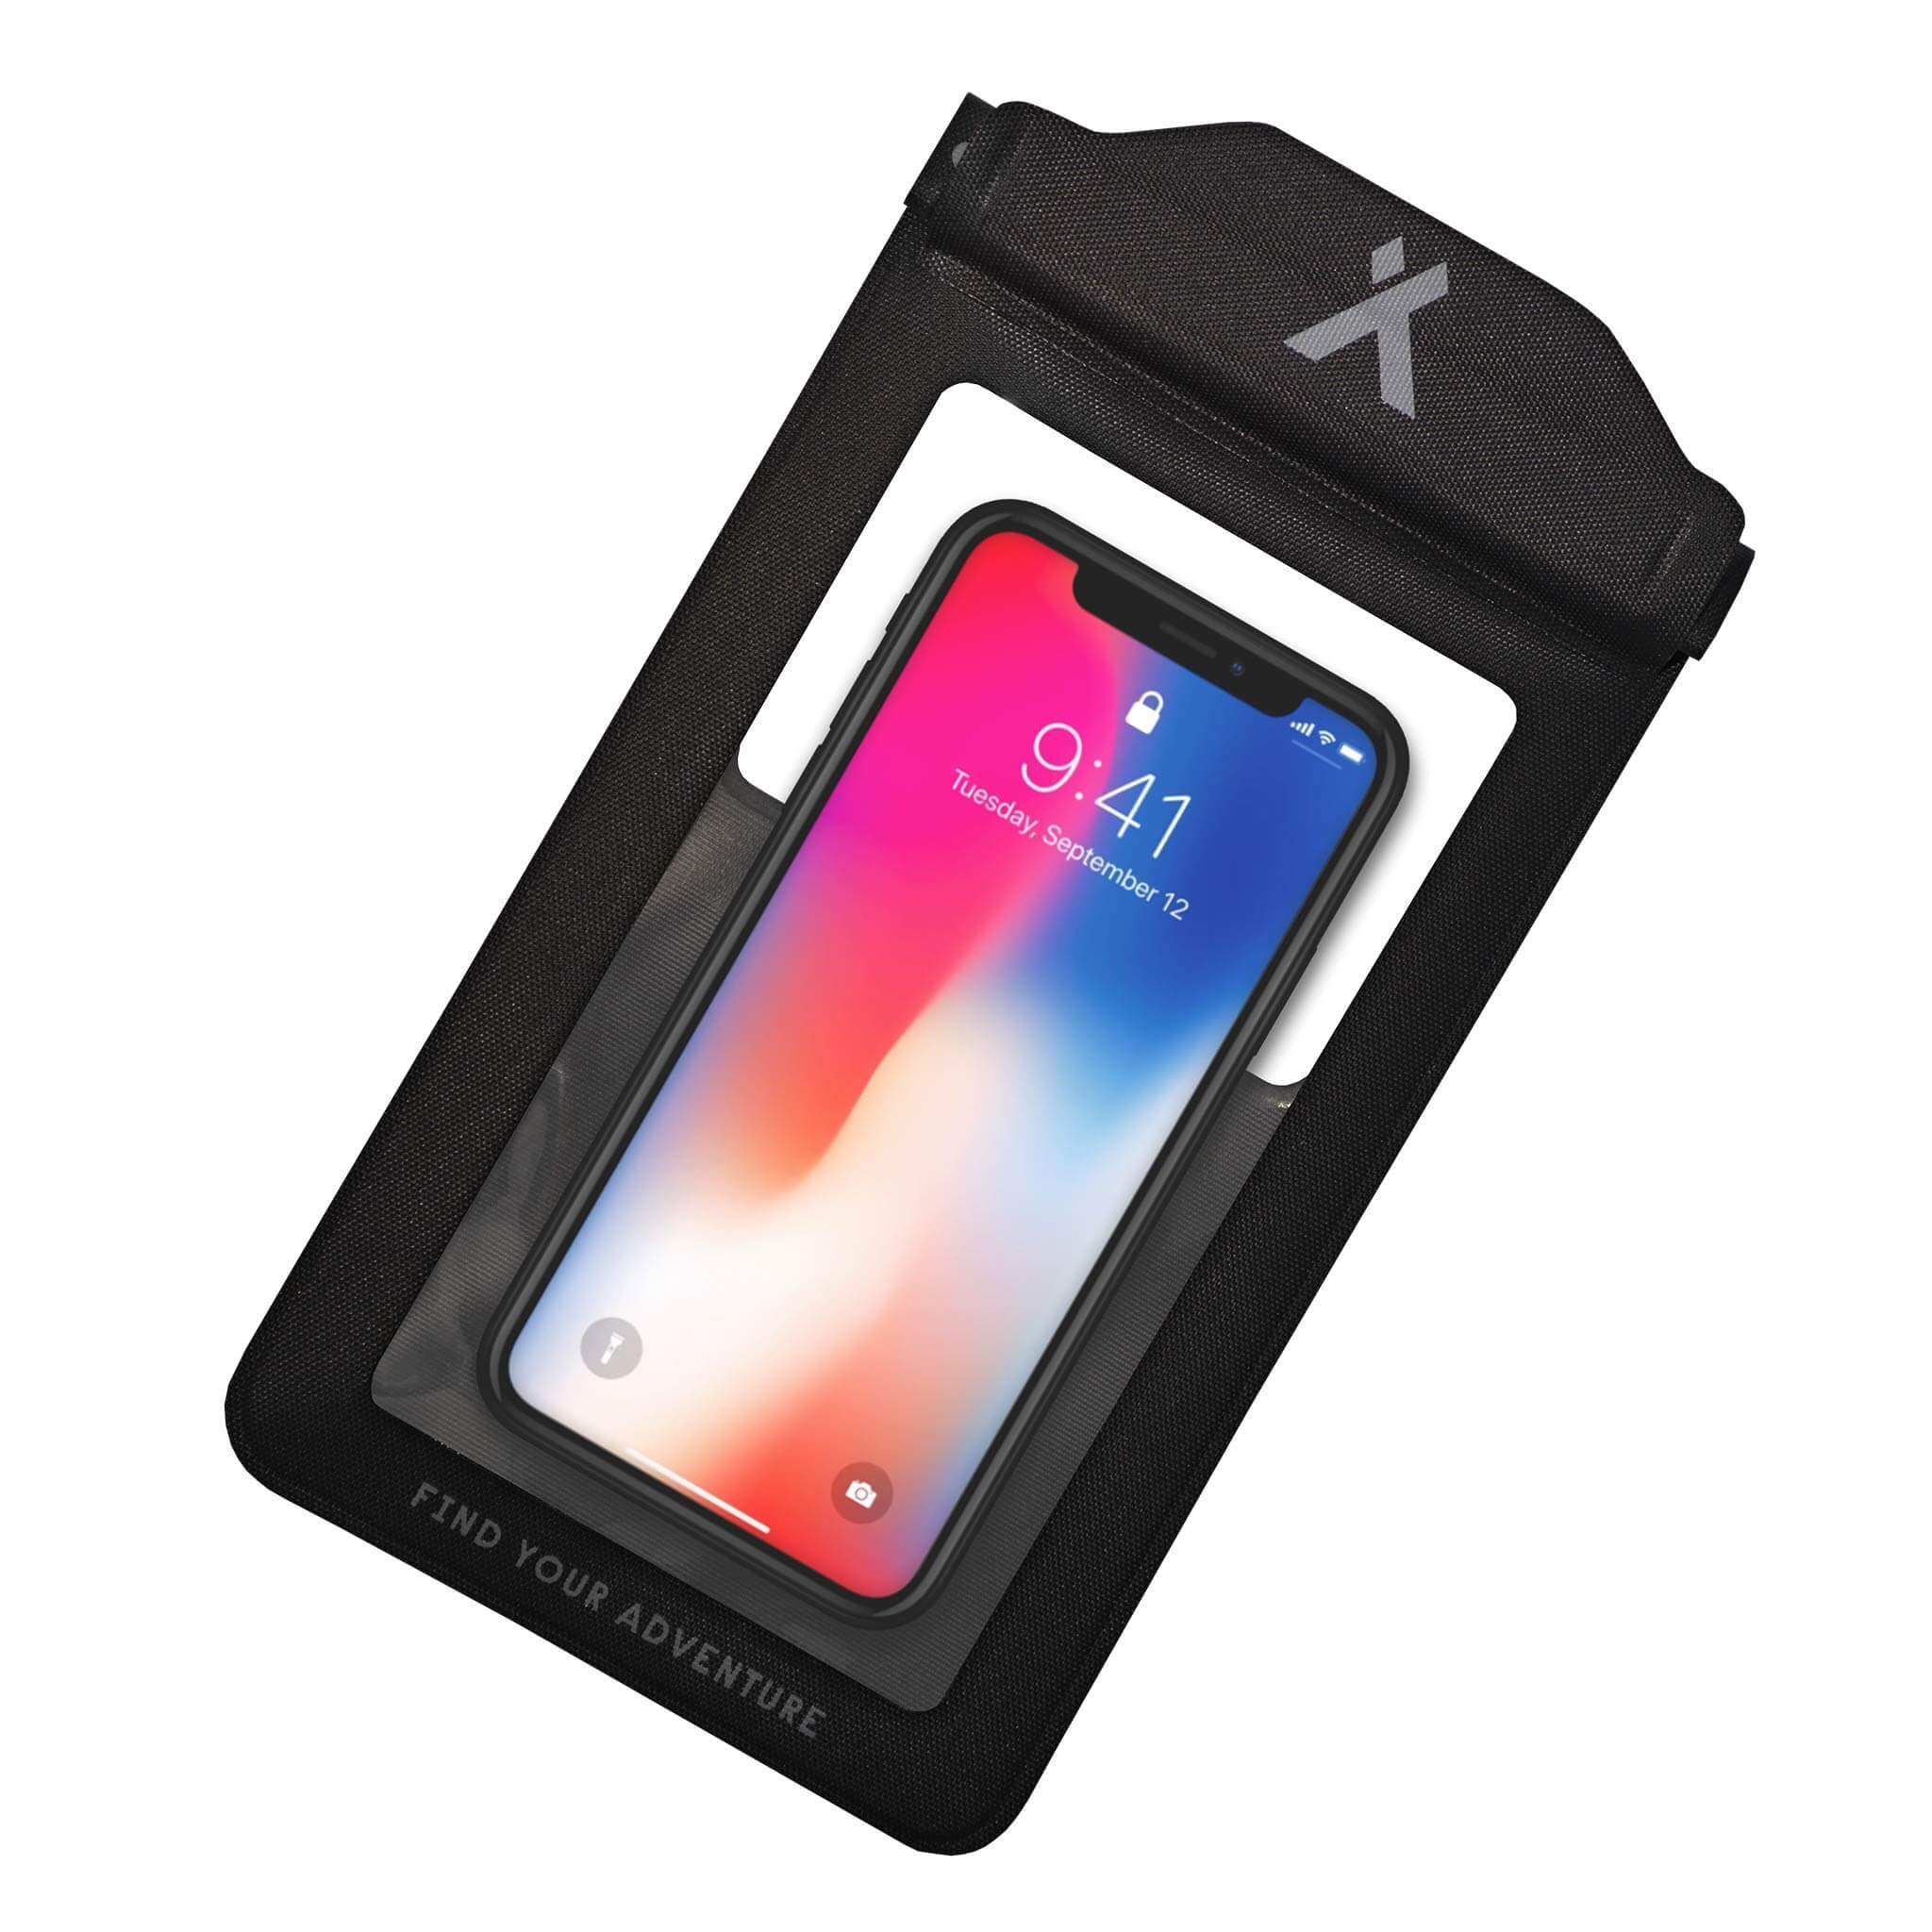 Touch screen window of the Bear Grylls Waterproof phone pouch